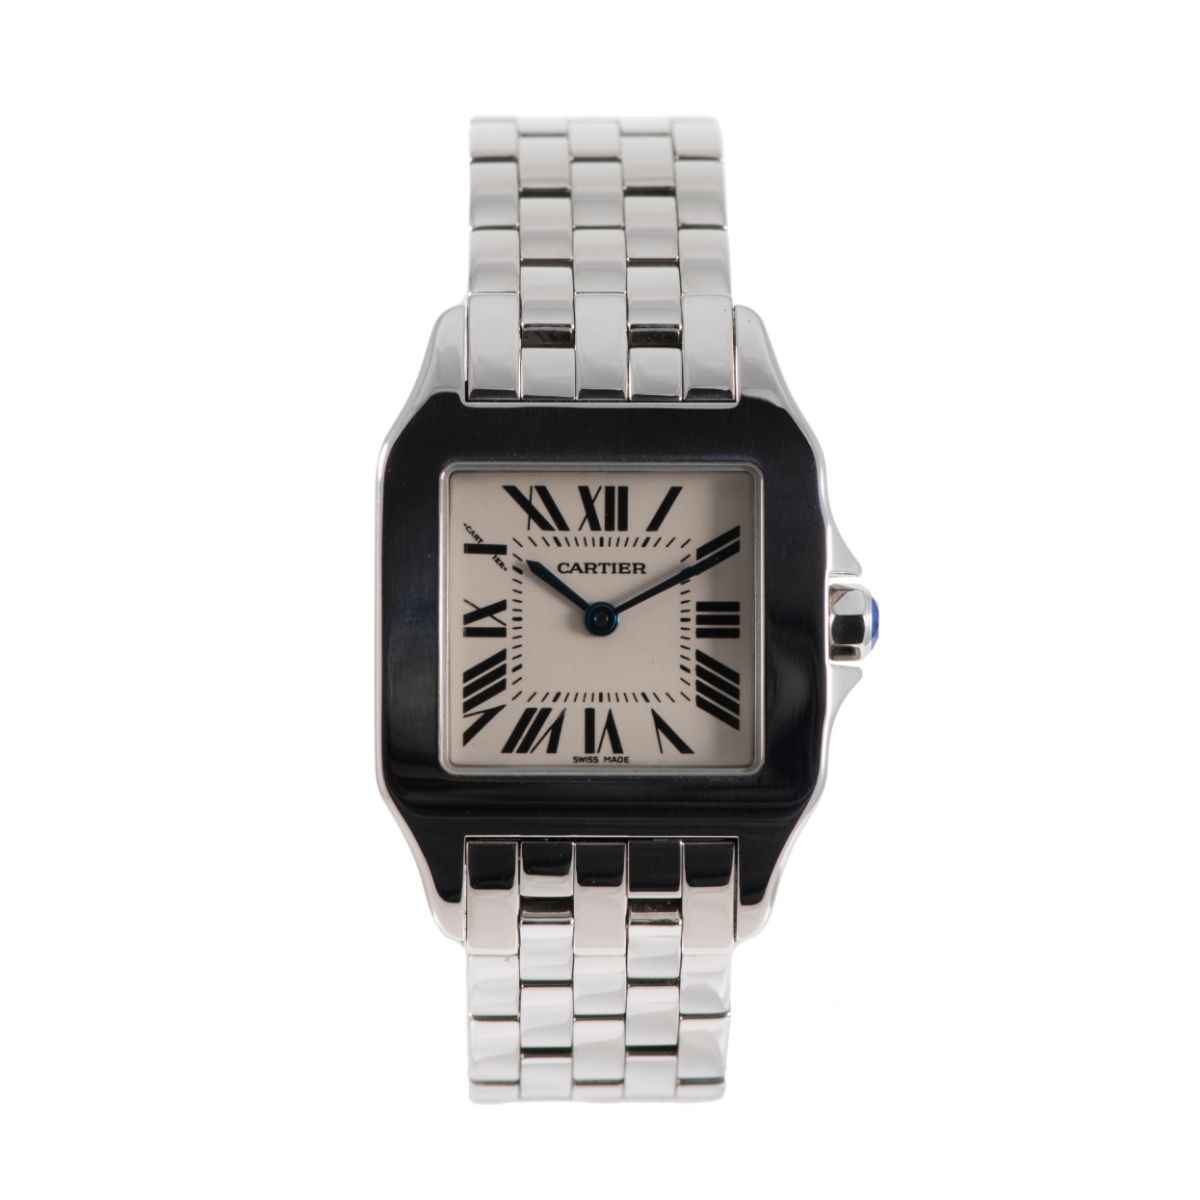 Cartier Santos Demoiselle 2701 26mm Cream & Stainless Steel Quartz Unisex Watch